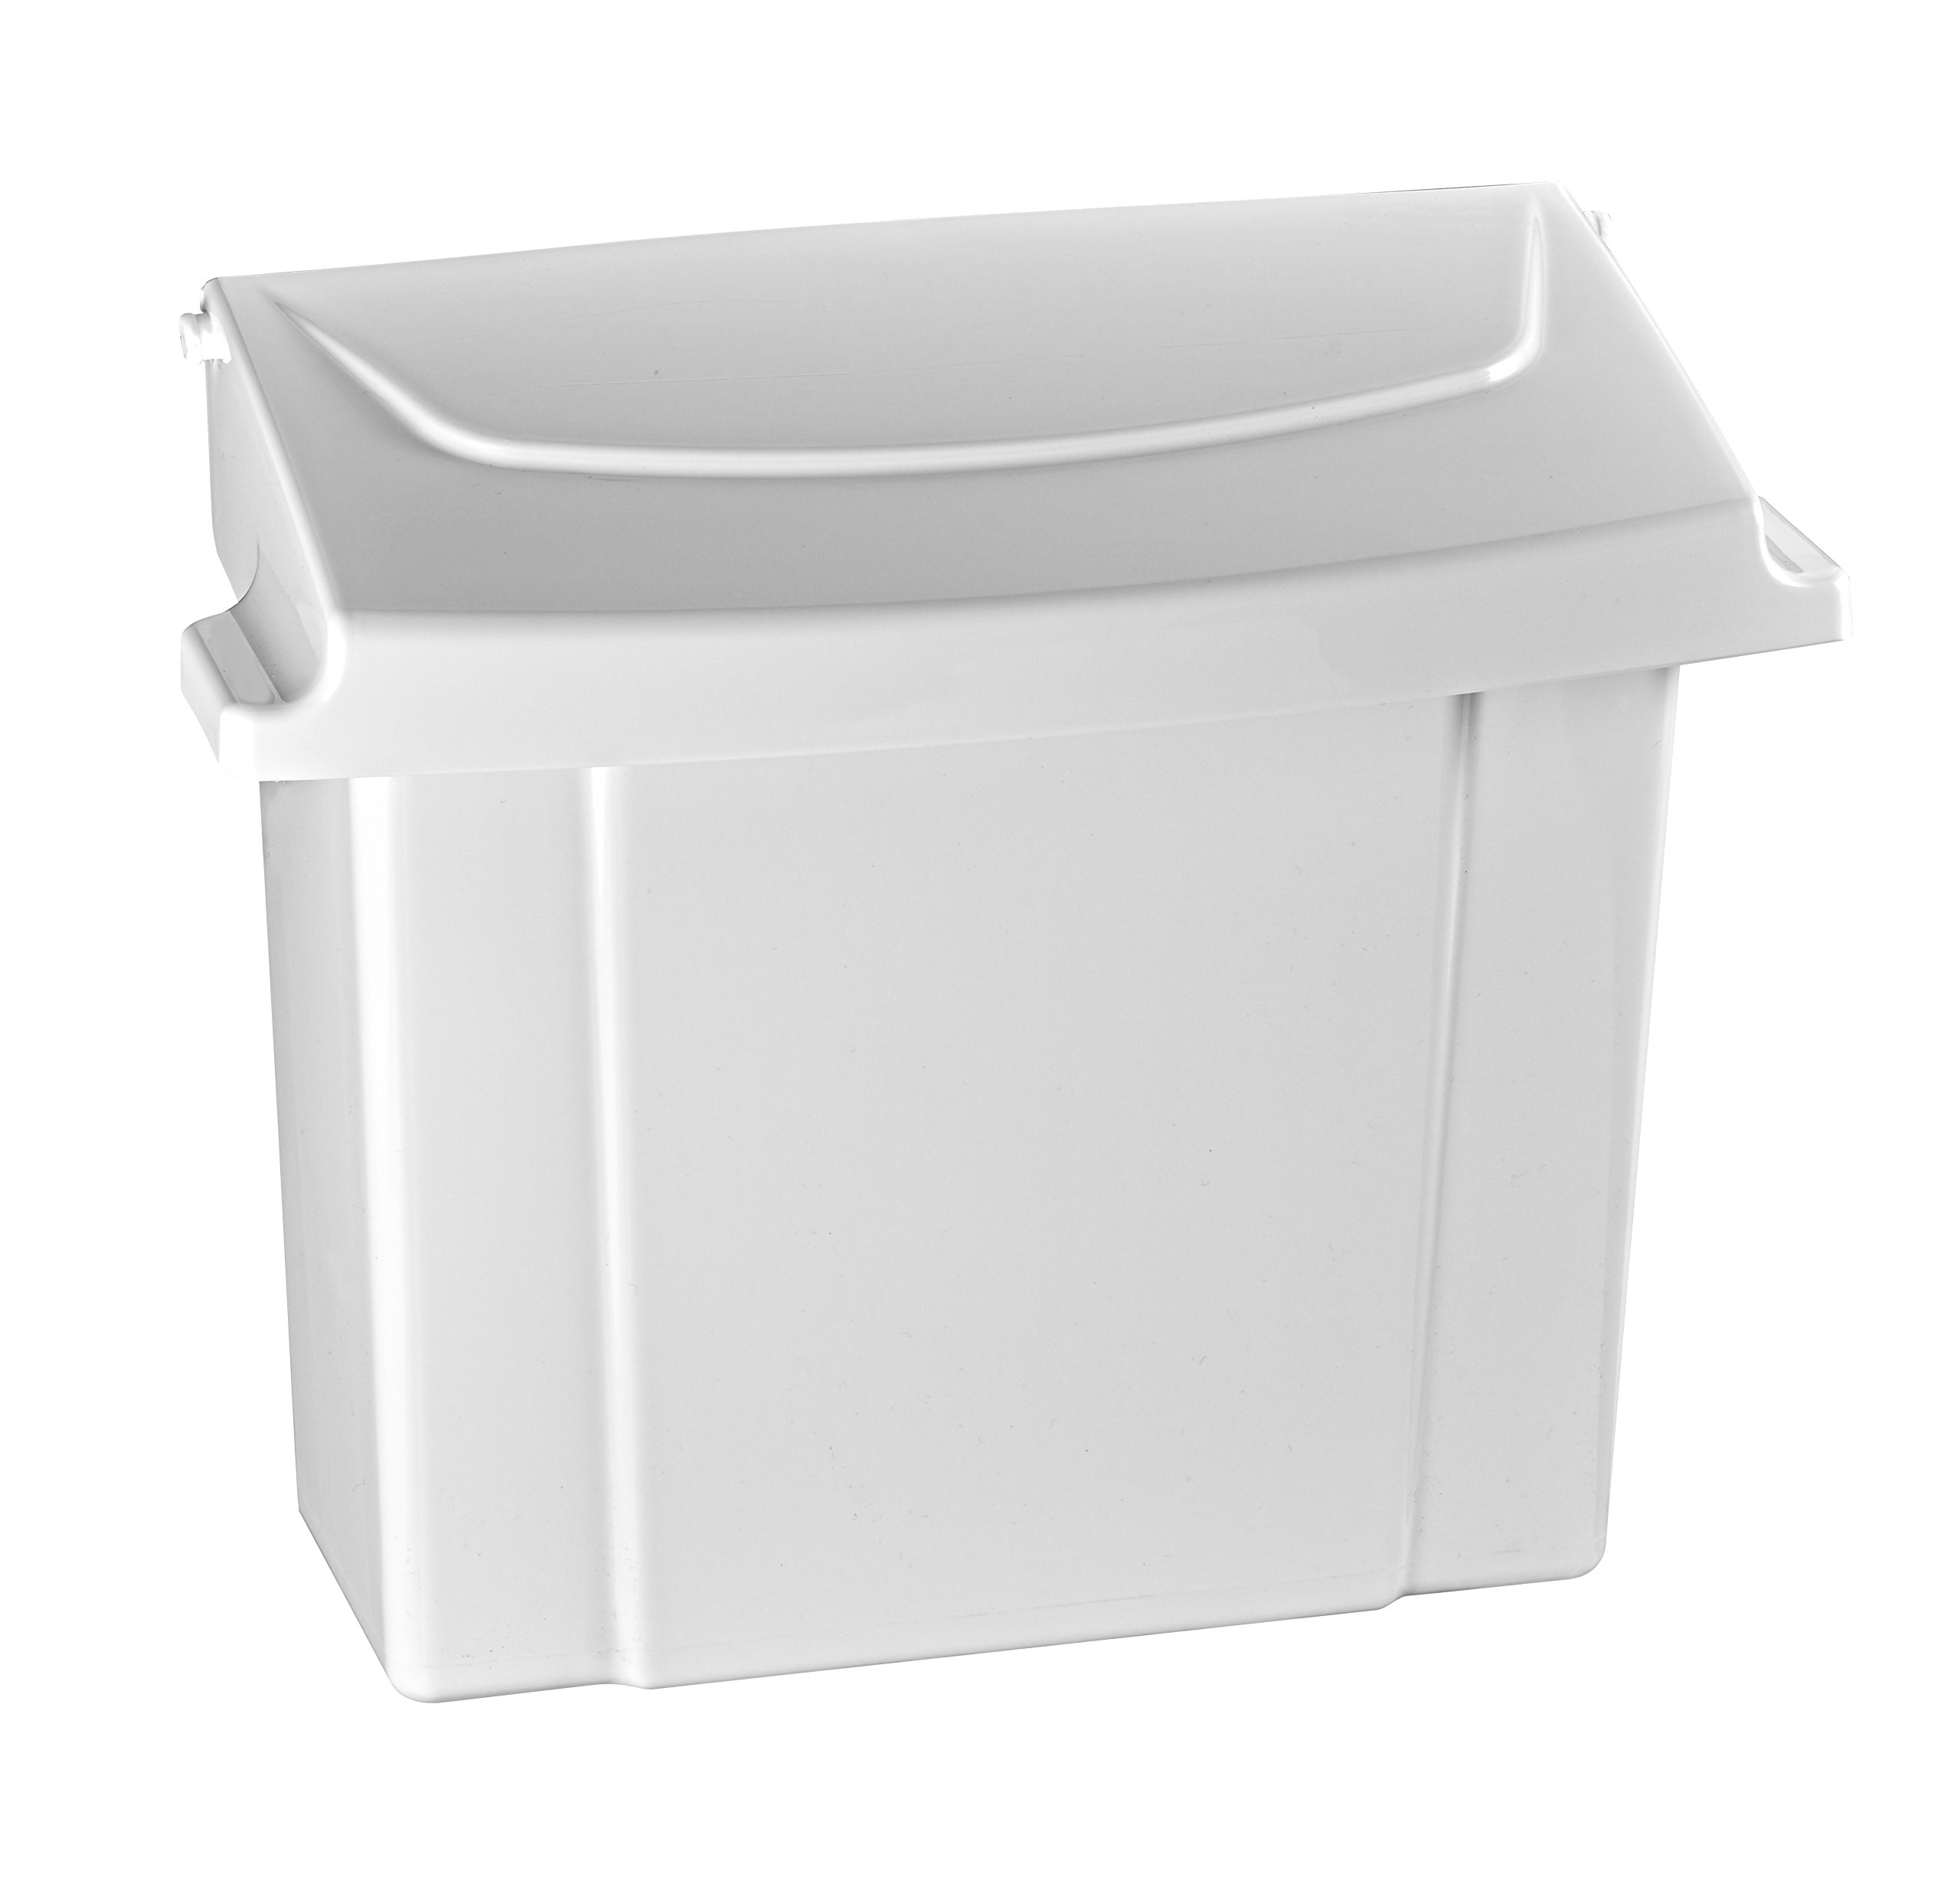 Alpine Sanitary Napkins Receptacle - Feminine Hygiene Products, Tampon & Waste Disposal Container - Durable ABS Plastic - Seals Tightly & Traps Odors -Easy Installation Hardware Included (White)